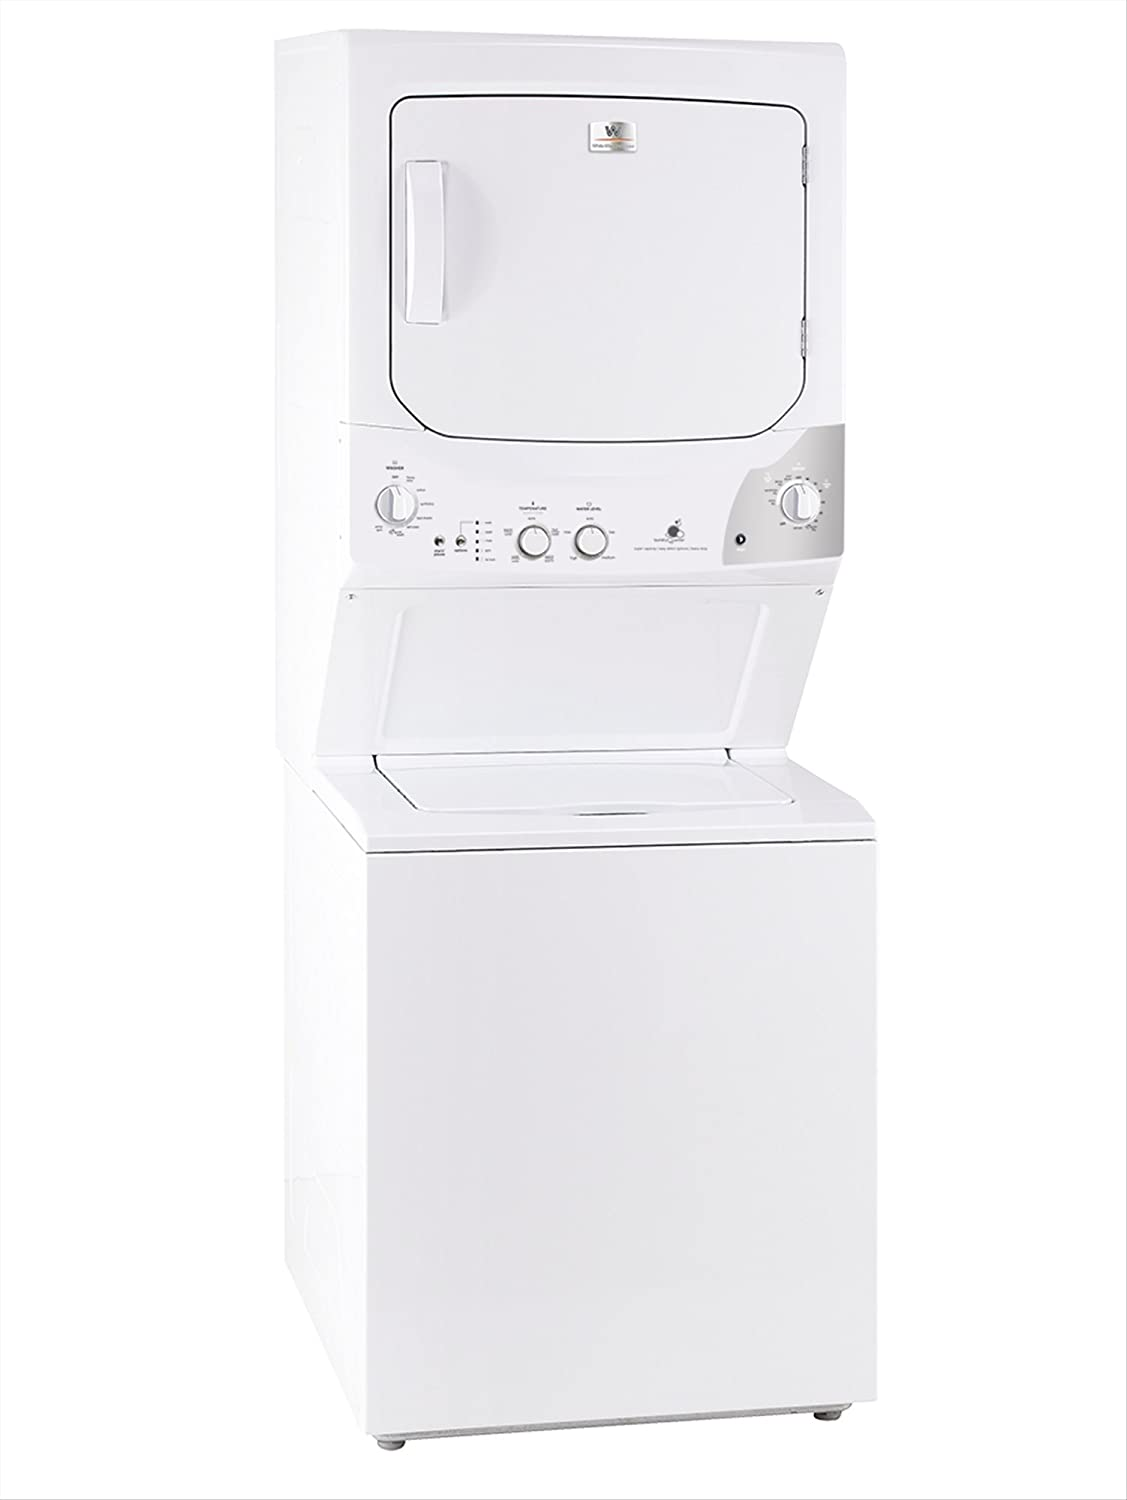 White-Westinghouse by Electrolux MKTG15GNAWB Laundry Center Stack Washer Dryer 220 Volts 50Hz Export Only